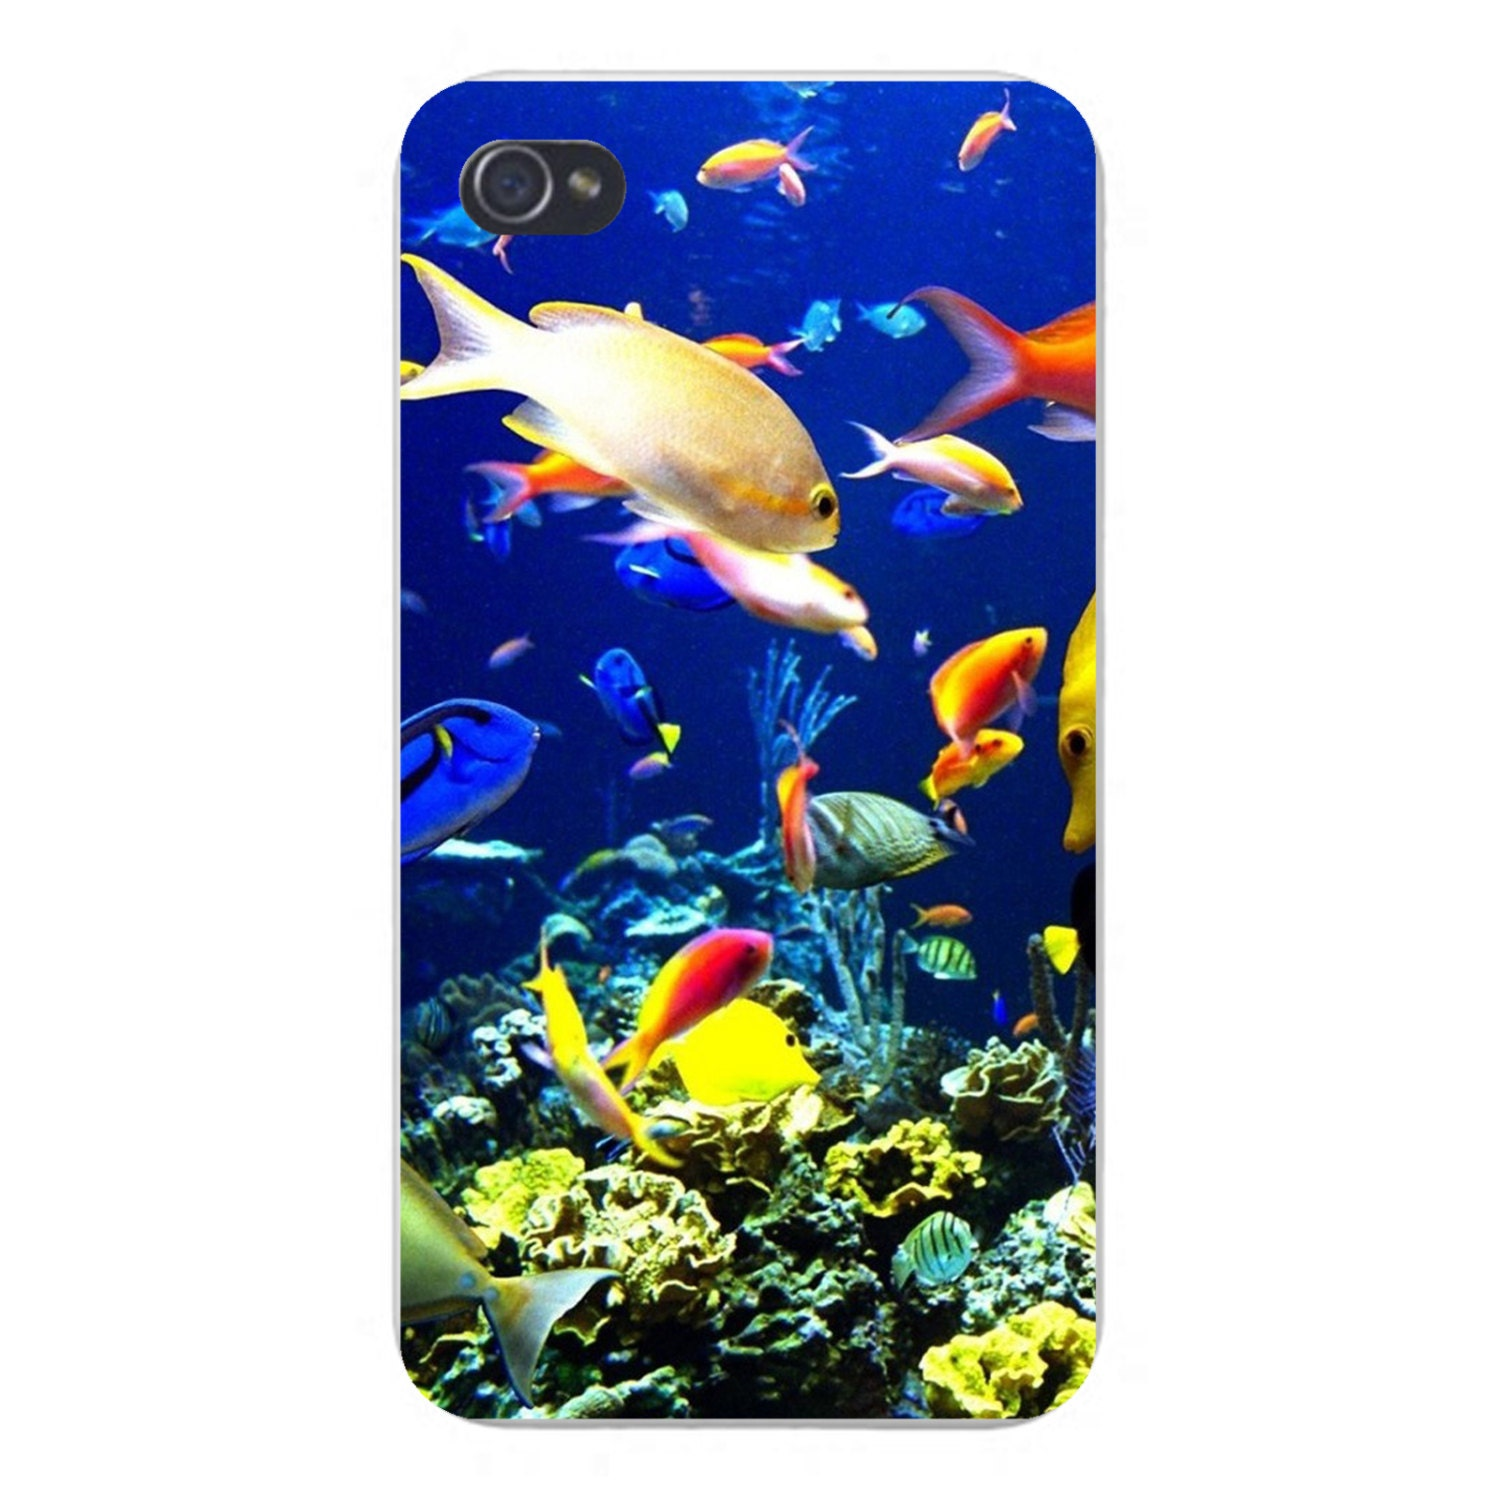 Apple iphone custom case white plastic snap on fish in ocean for Snap on fish tank